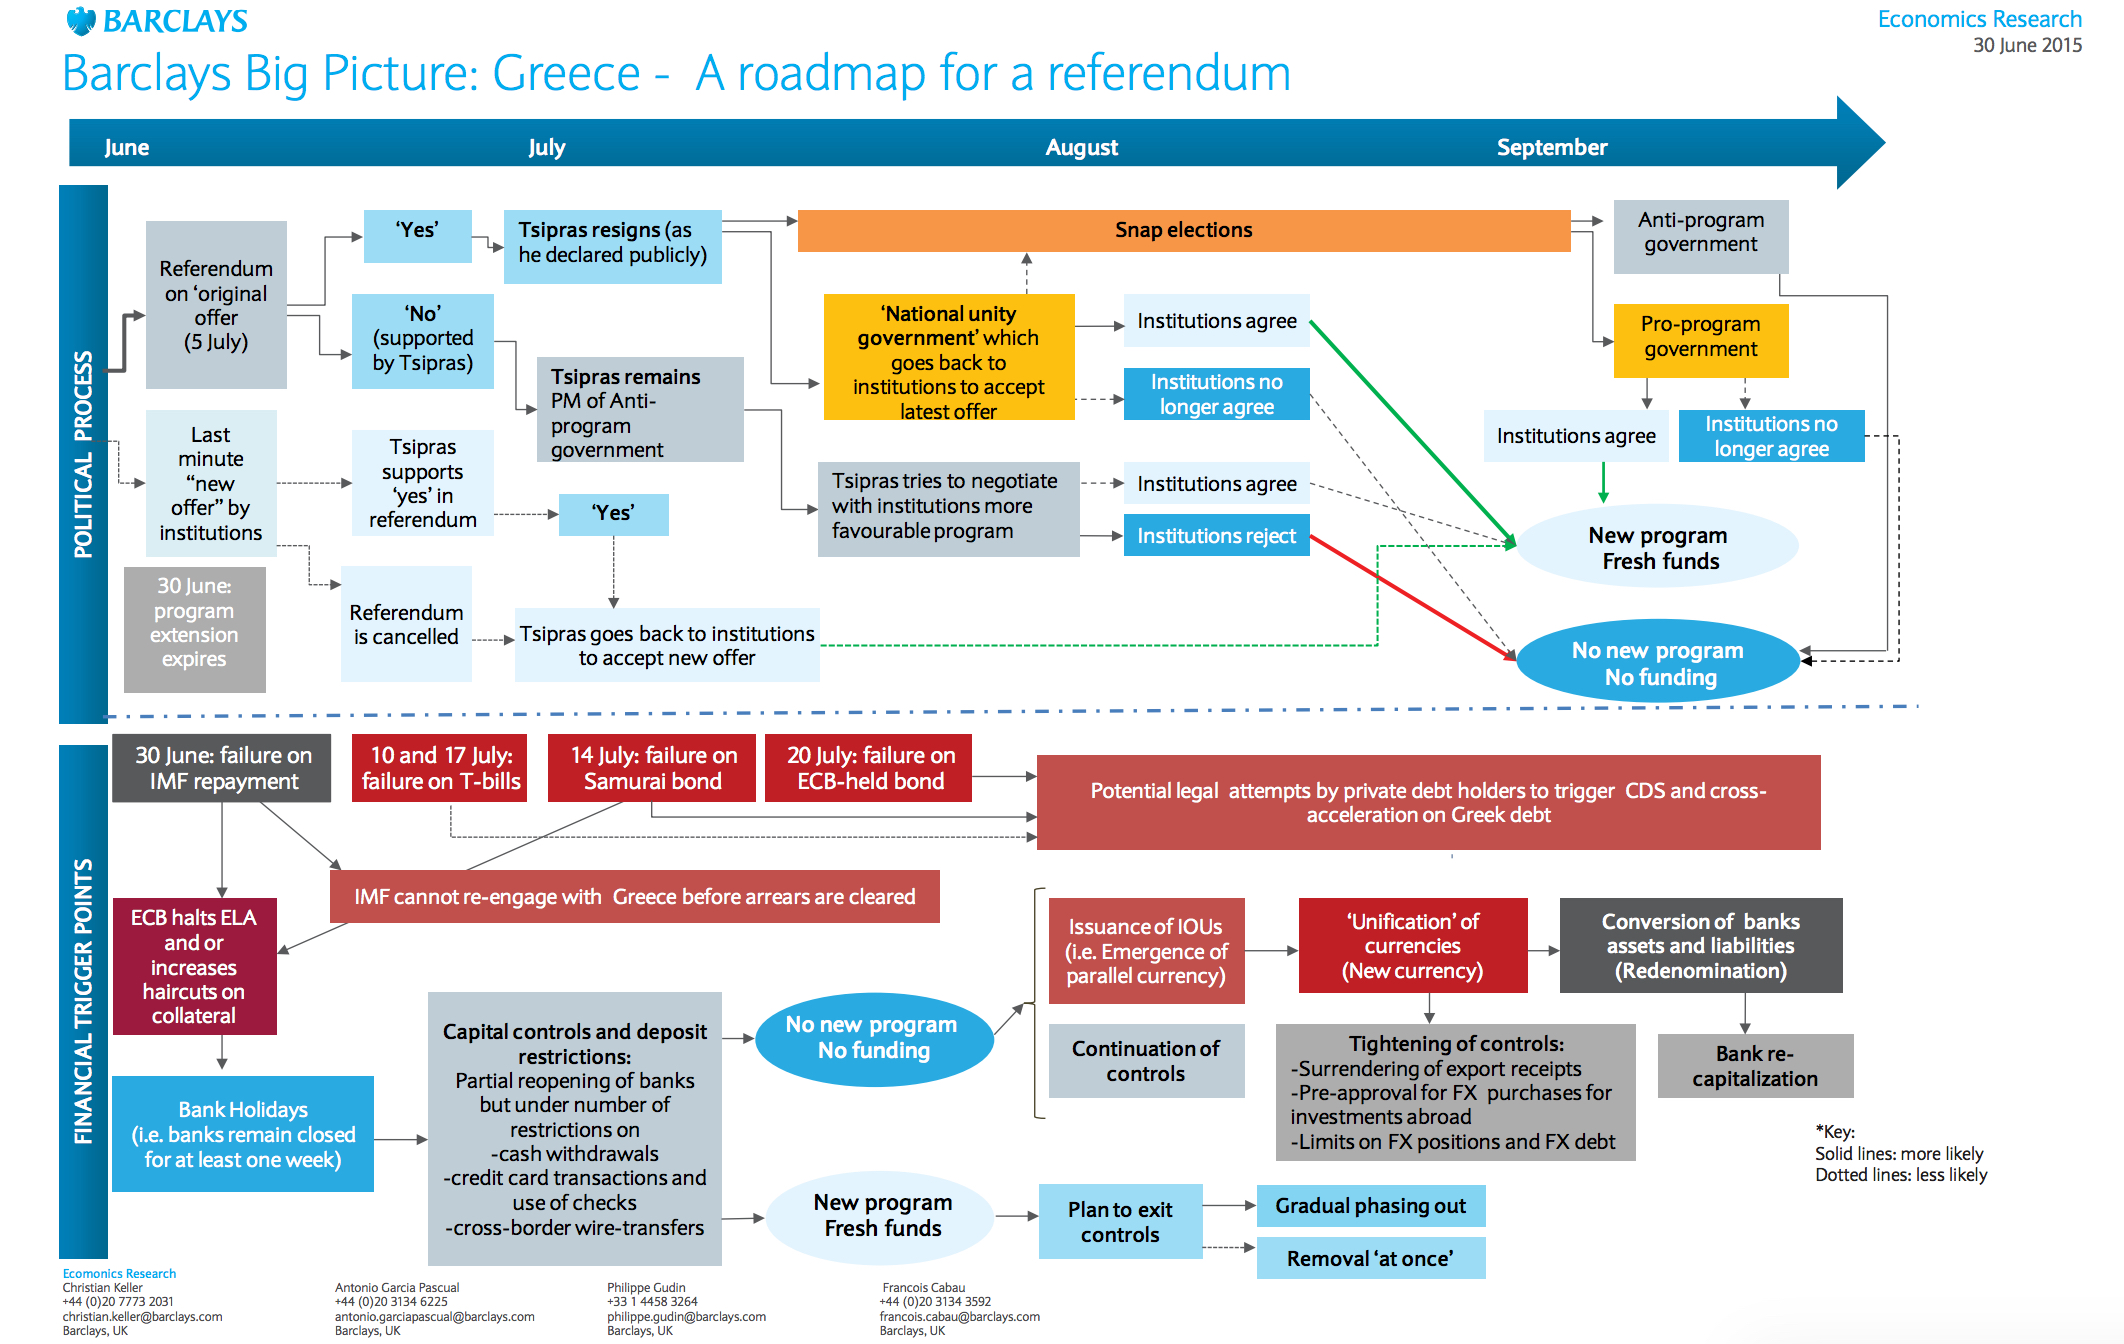 From http://www.zerohedge.com/news/2015-07-01/next-steps-greece-complete-post-referendum-roadmap